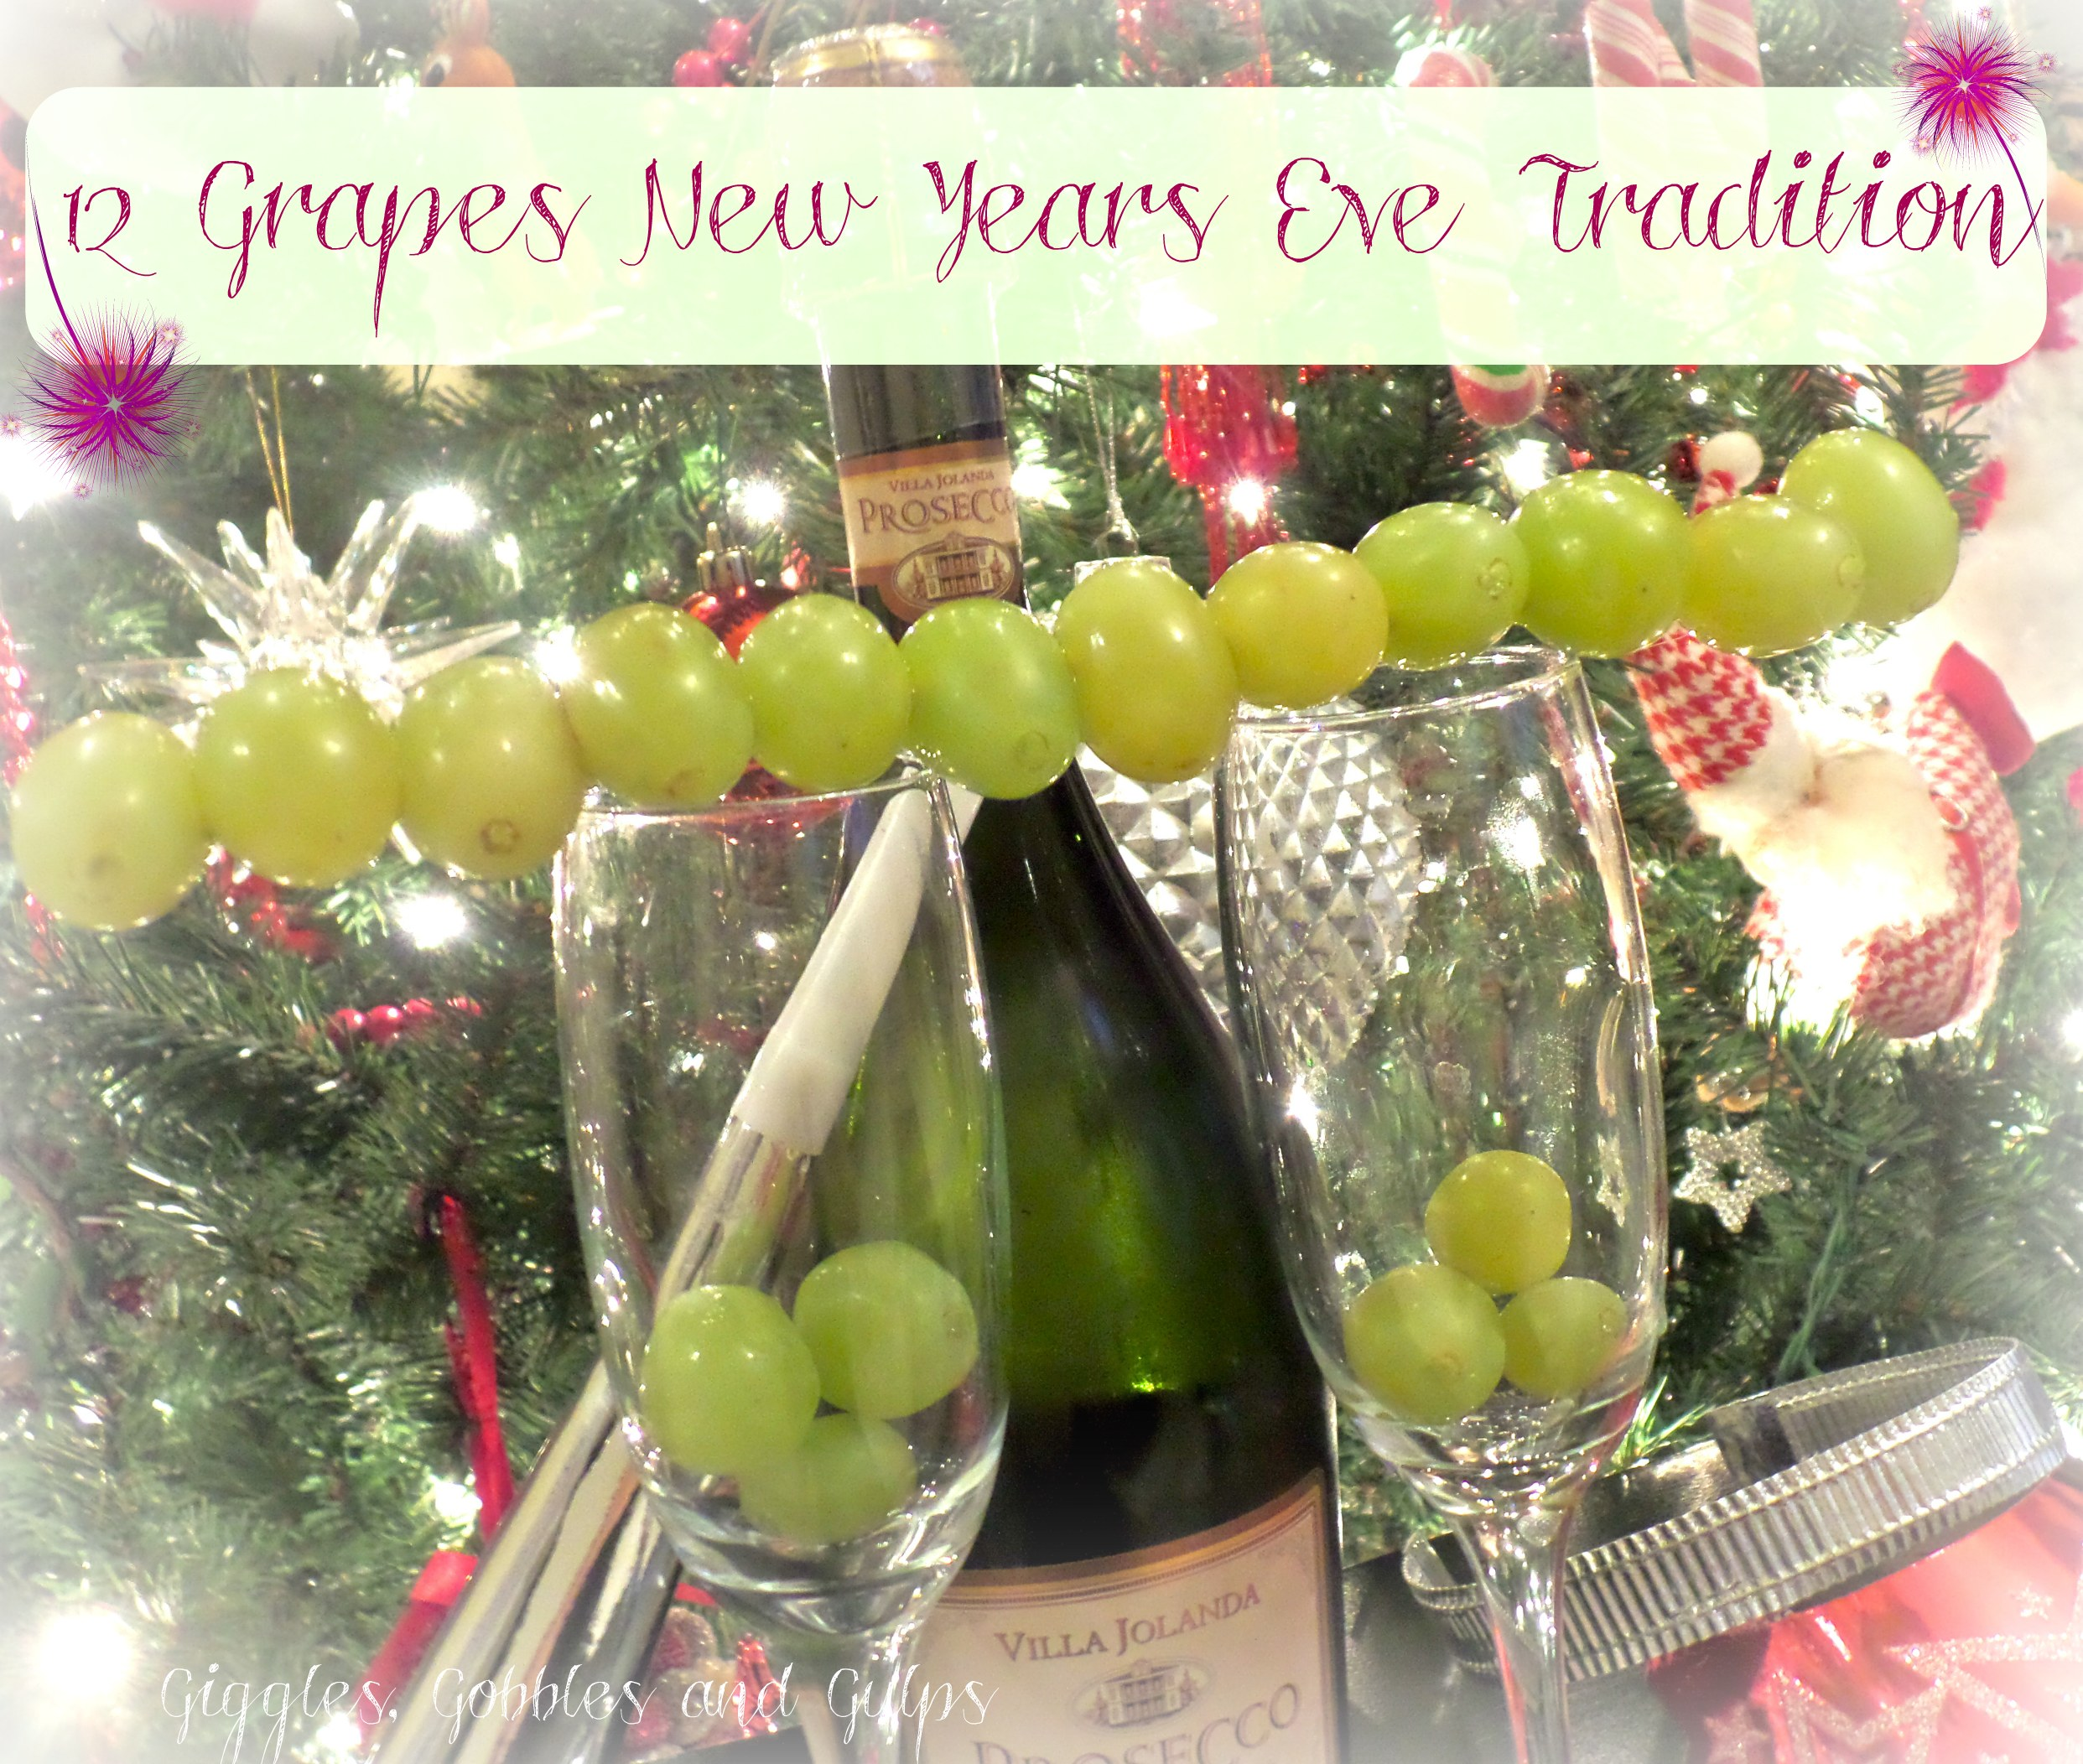 Romantic Things To Do On New Years Eve: 12 Grapes New Years Eve Tradition